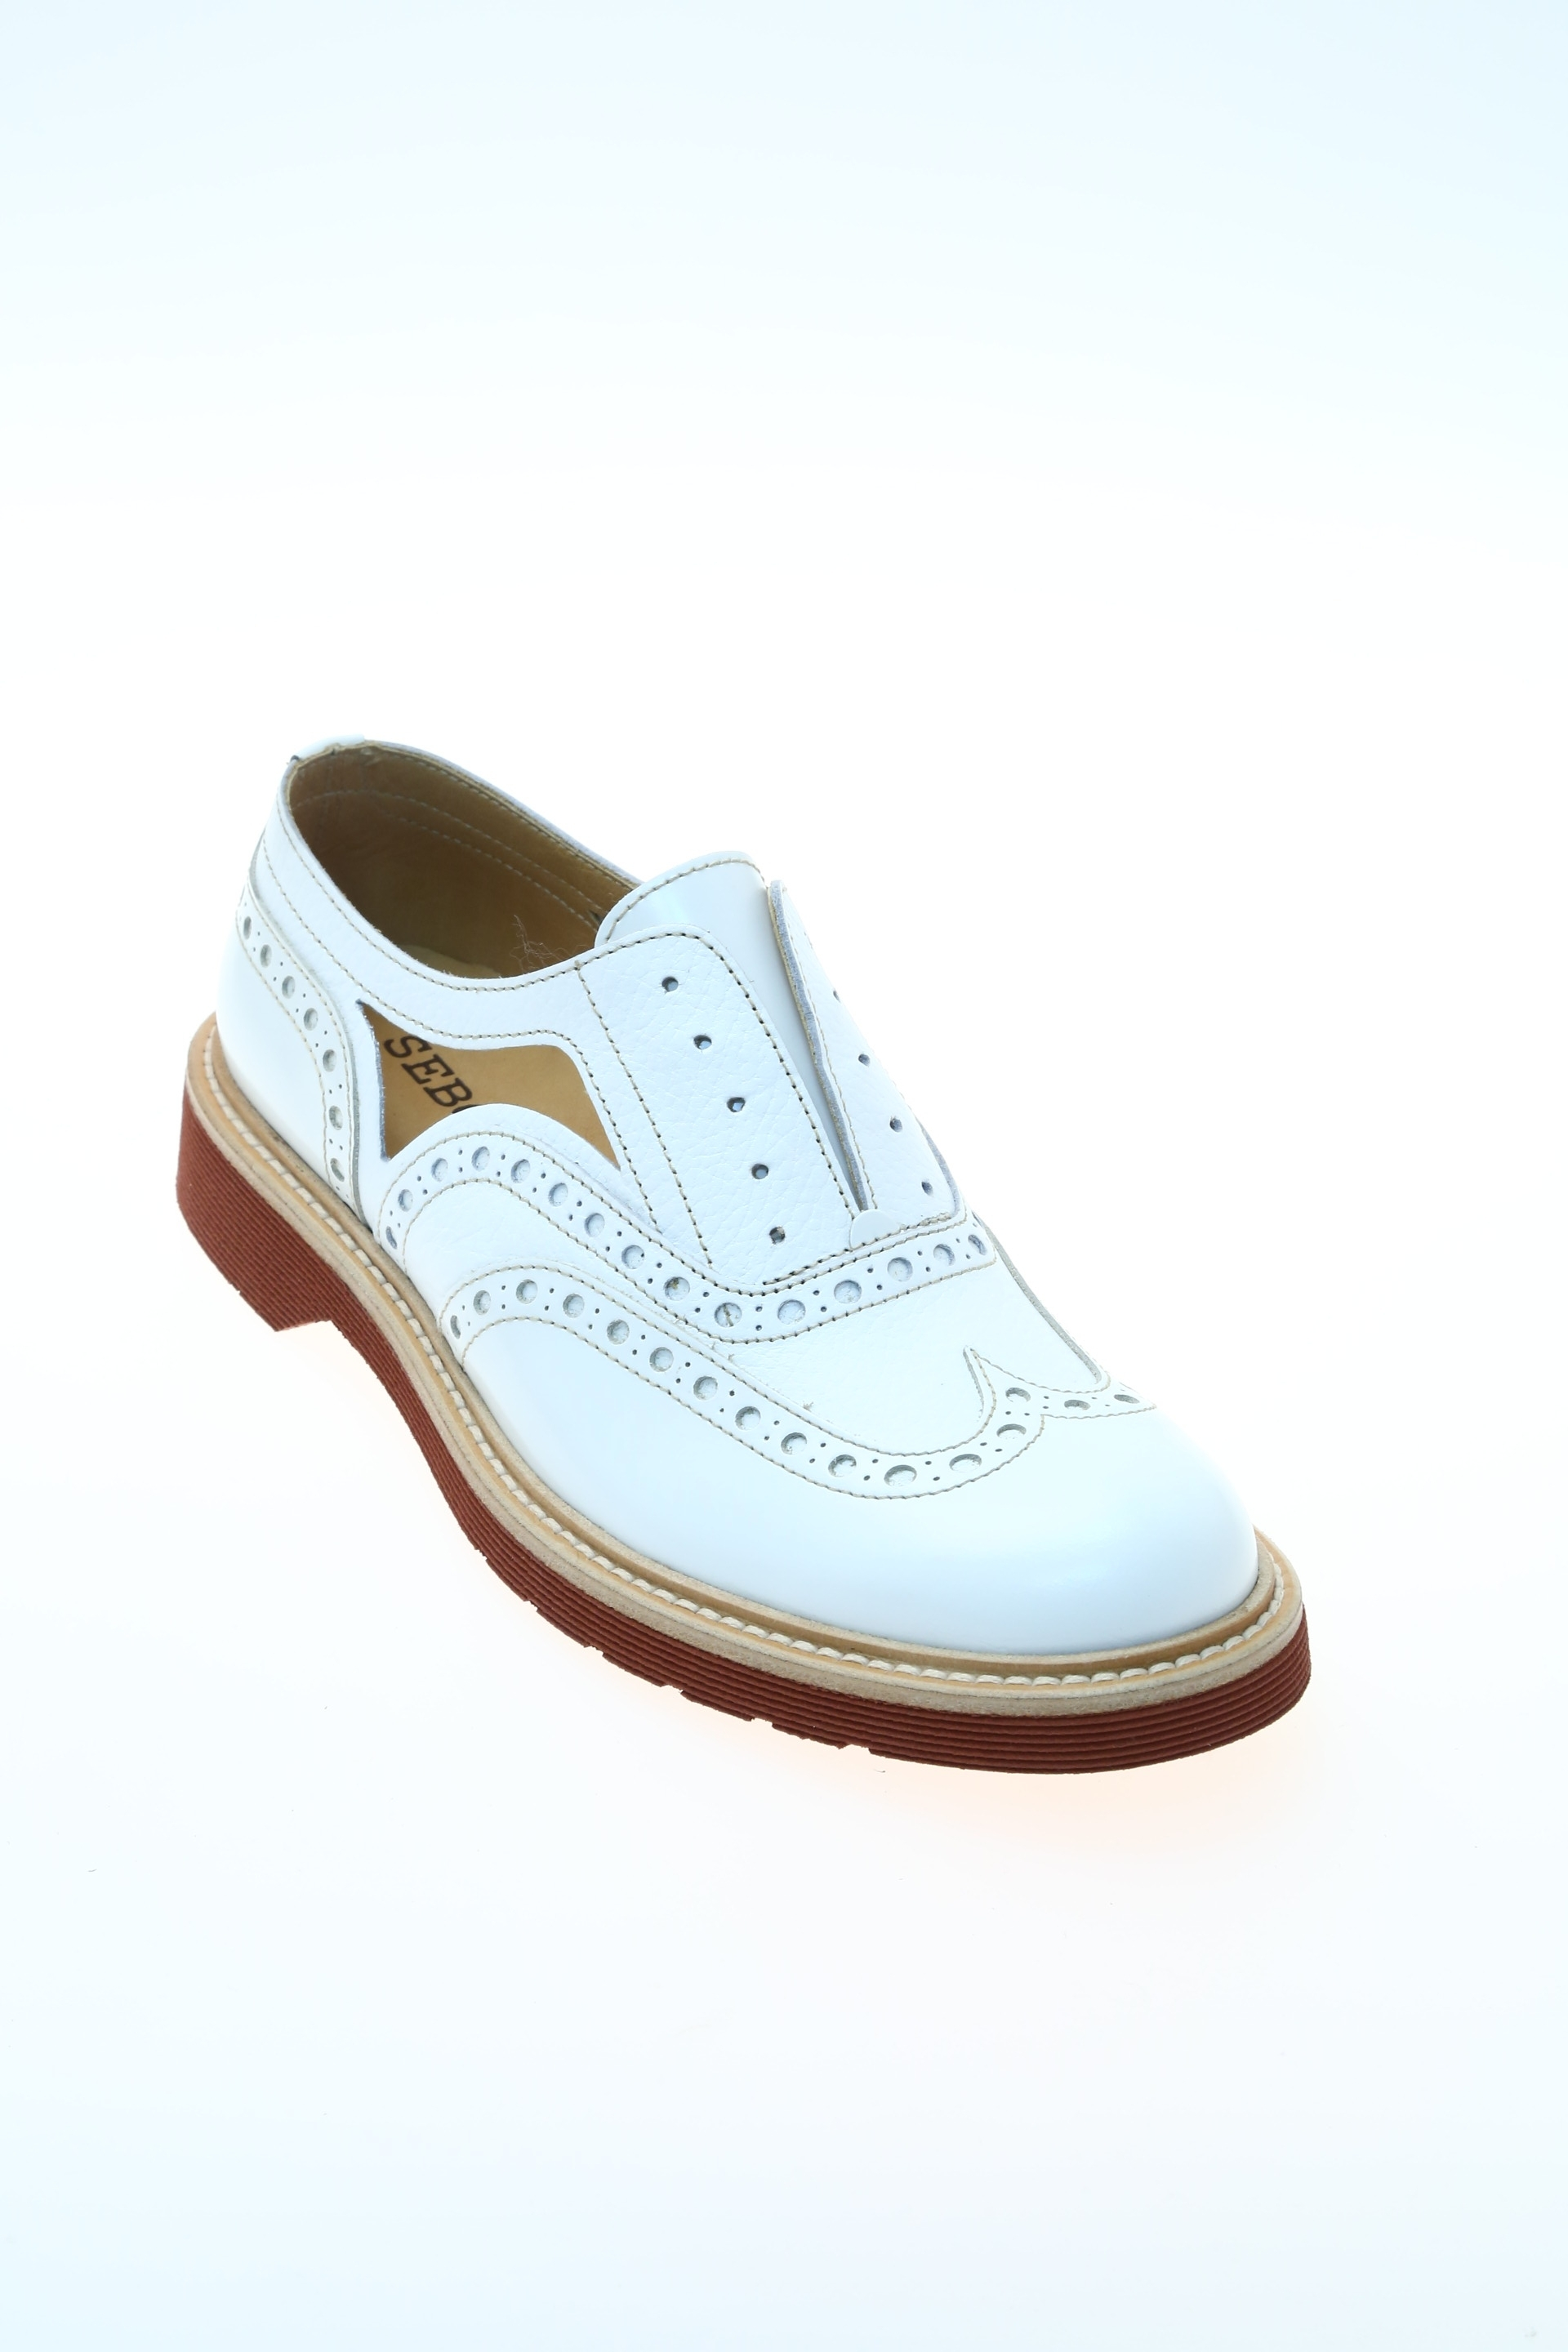 Audley Shoes Online